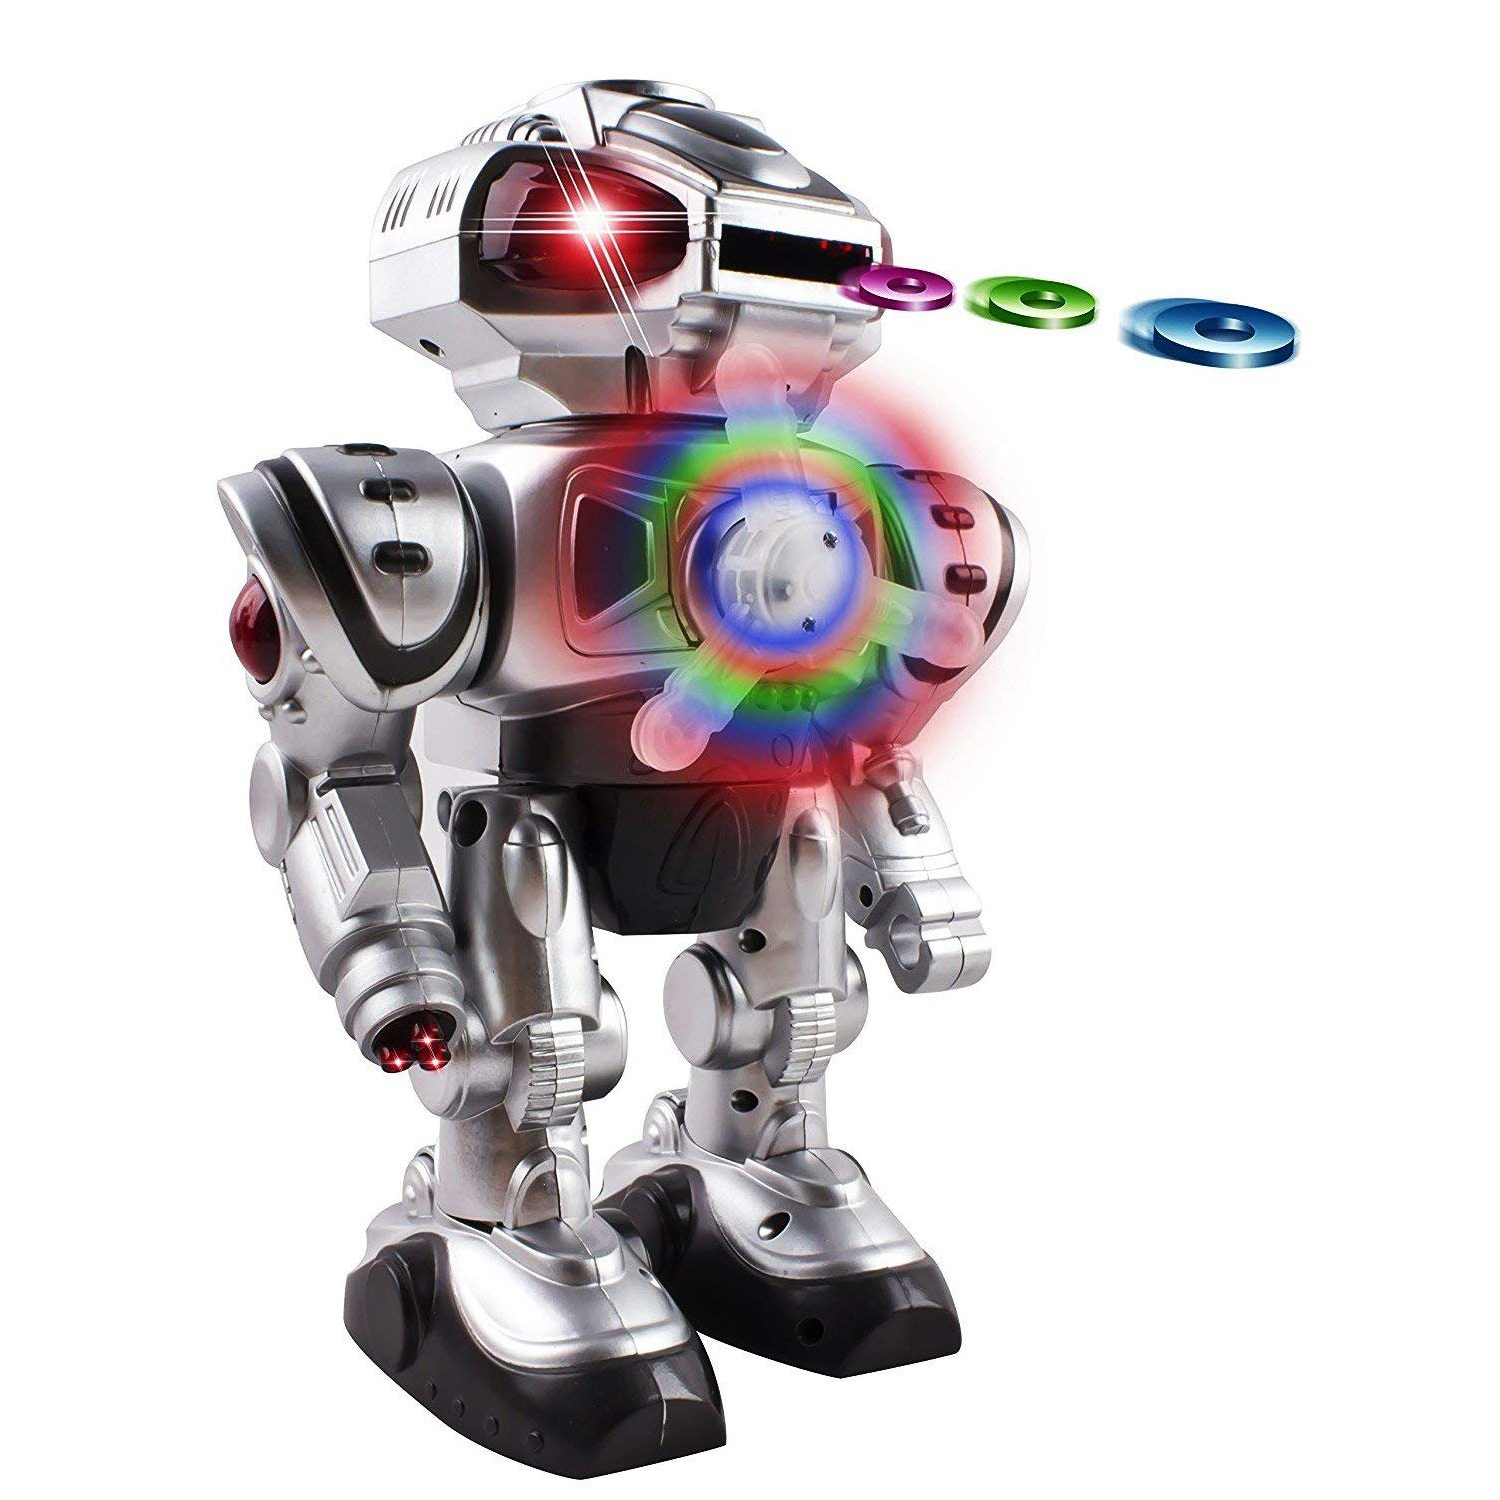 Super Android Toy Robot With Disc Shooting Walking Flashing Lights And Sound Features Great Action Toy For Kids Boys Girls Toddlers Battery Operated Silver